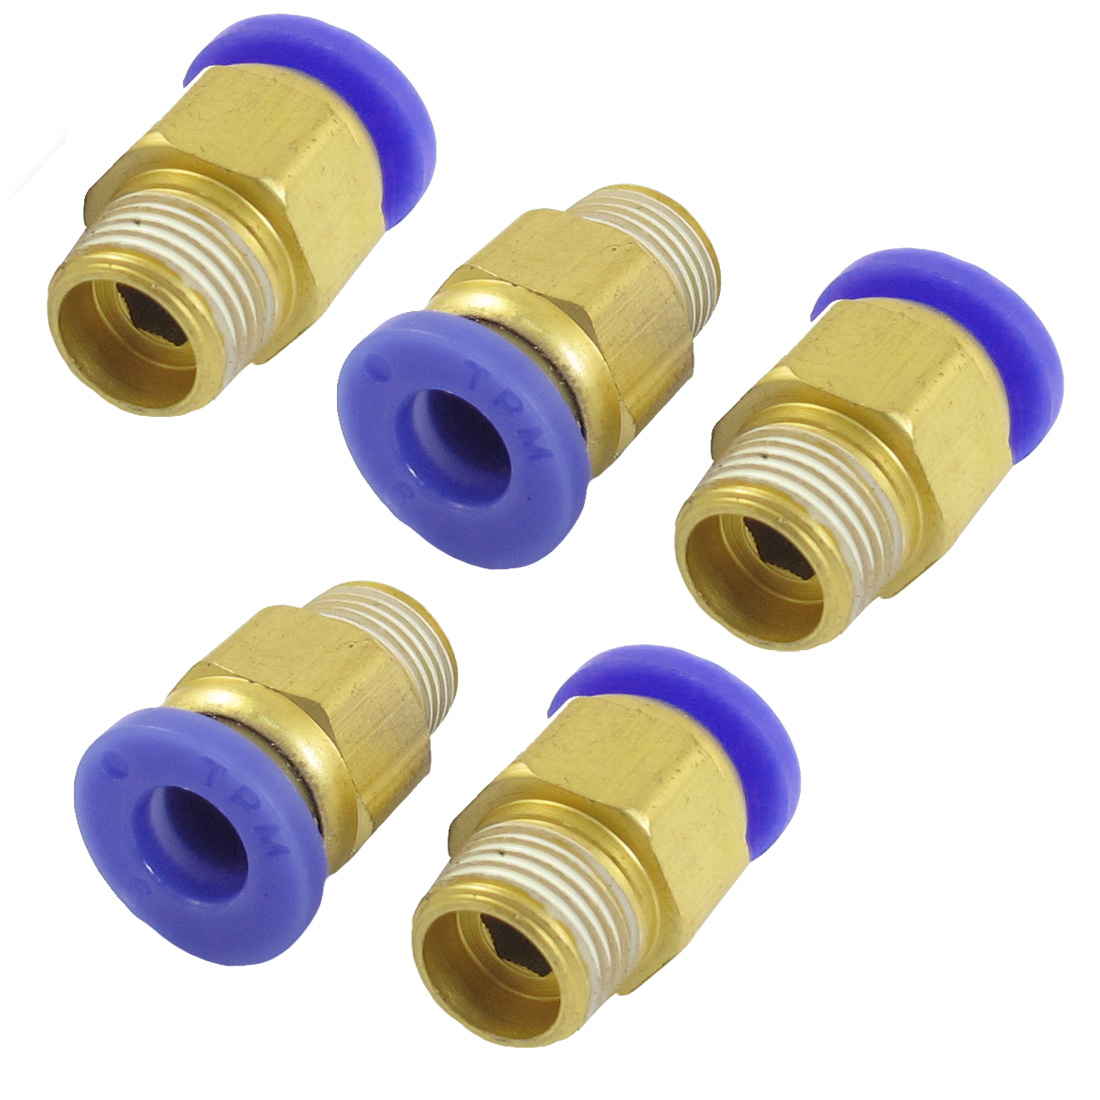 "6mm Hole 1/8"" PT Male Thread Straight Push in Tube Pneumatic Quick Fitting 5 Pcs"